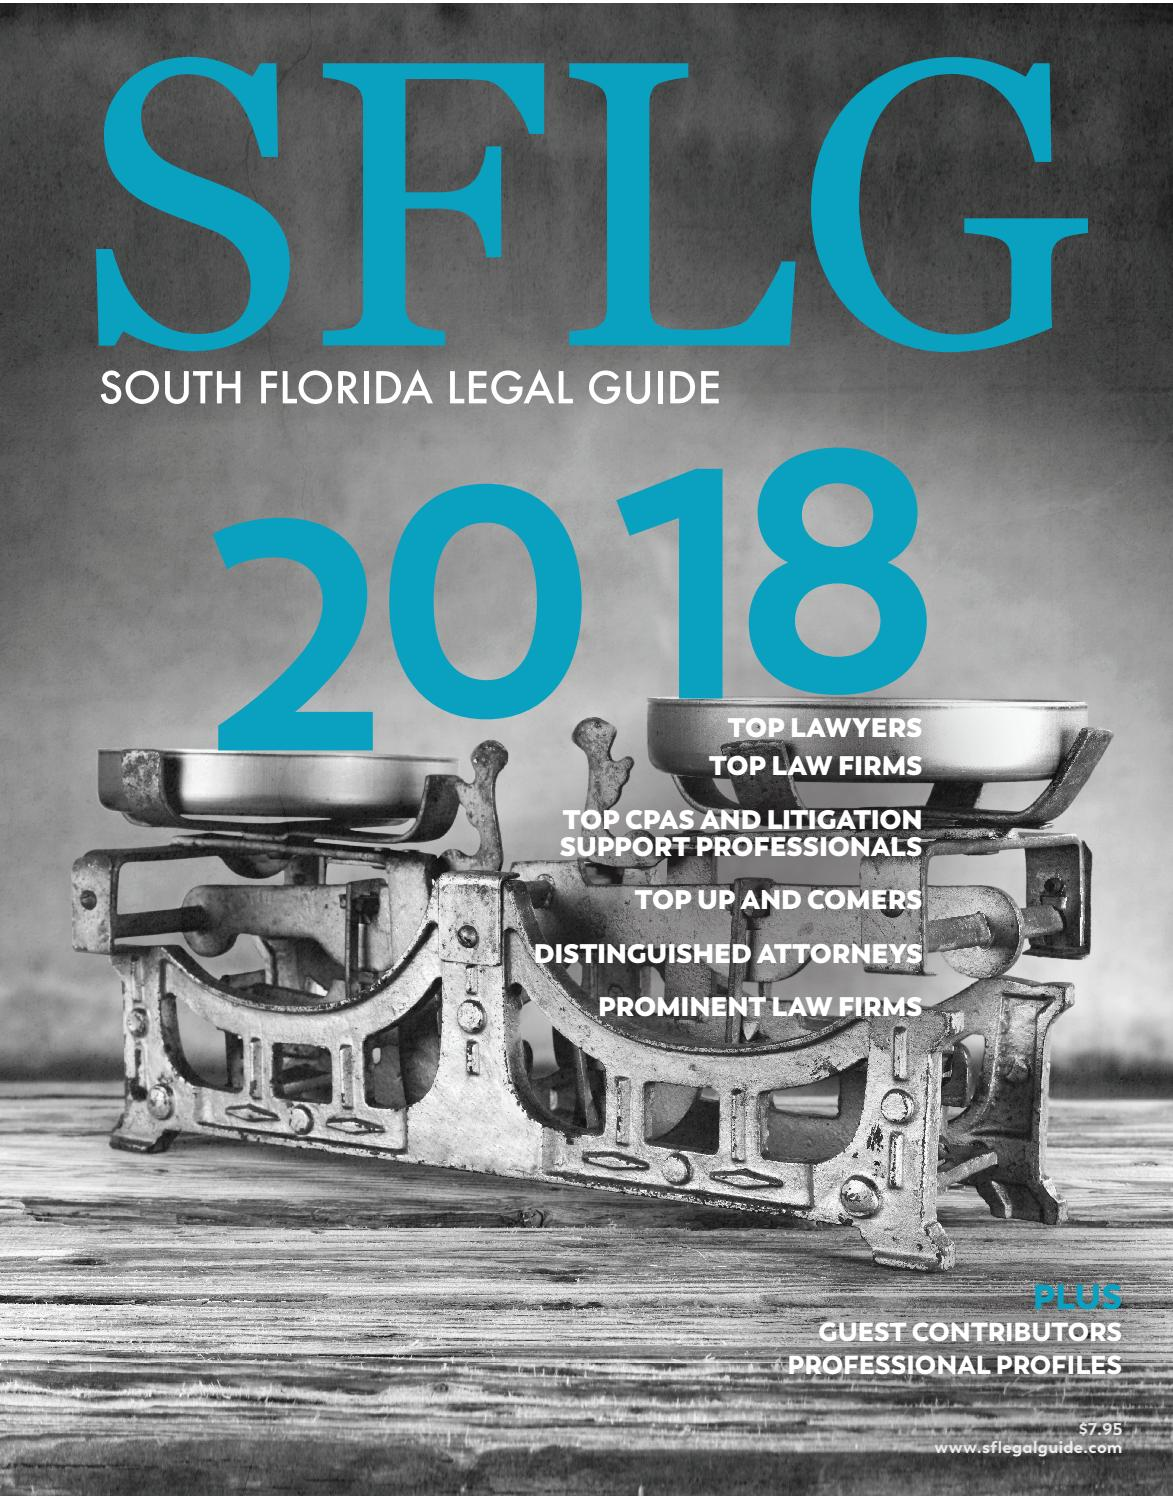 2018 South Florida Legal Guide By South Florida Legal Guide Issuu